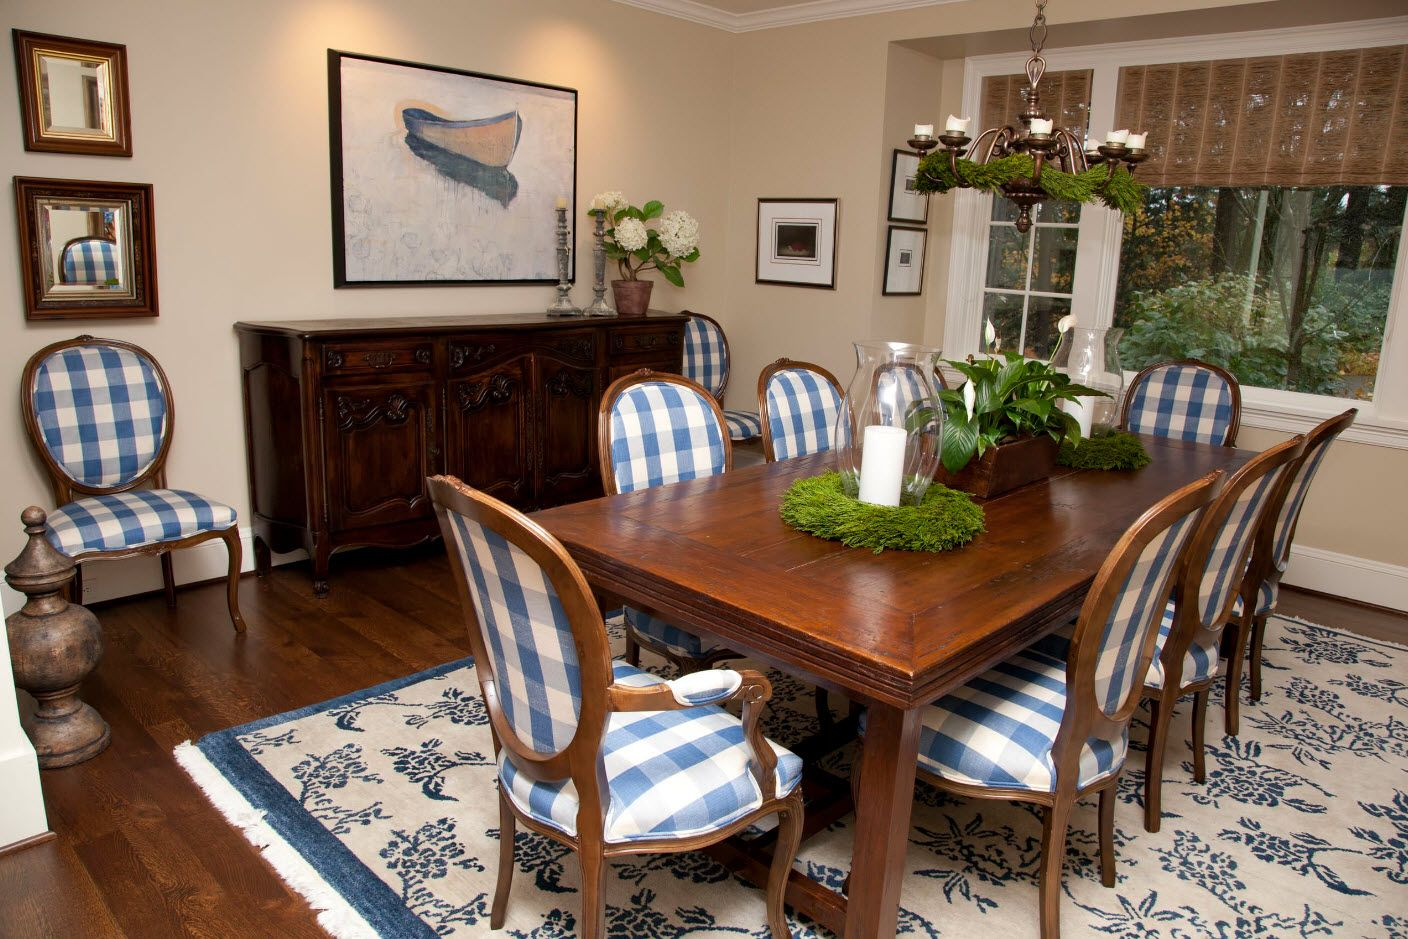 Classic interior of the dining room full of wooden furniture